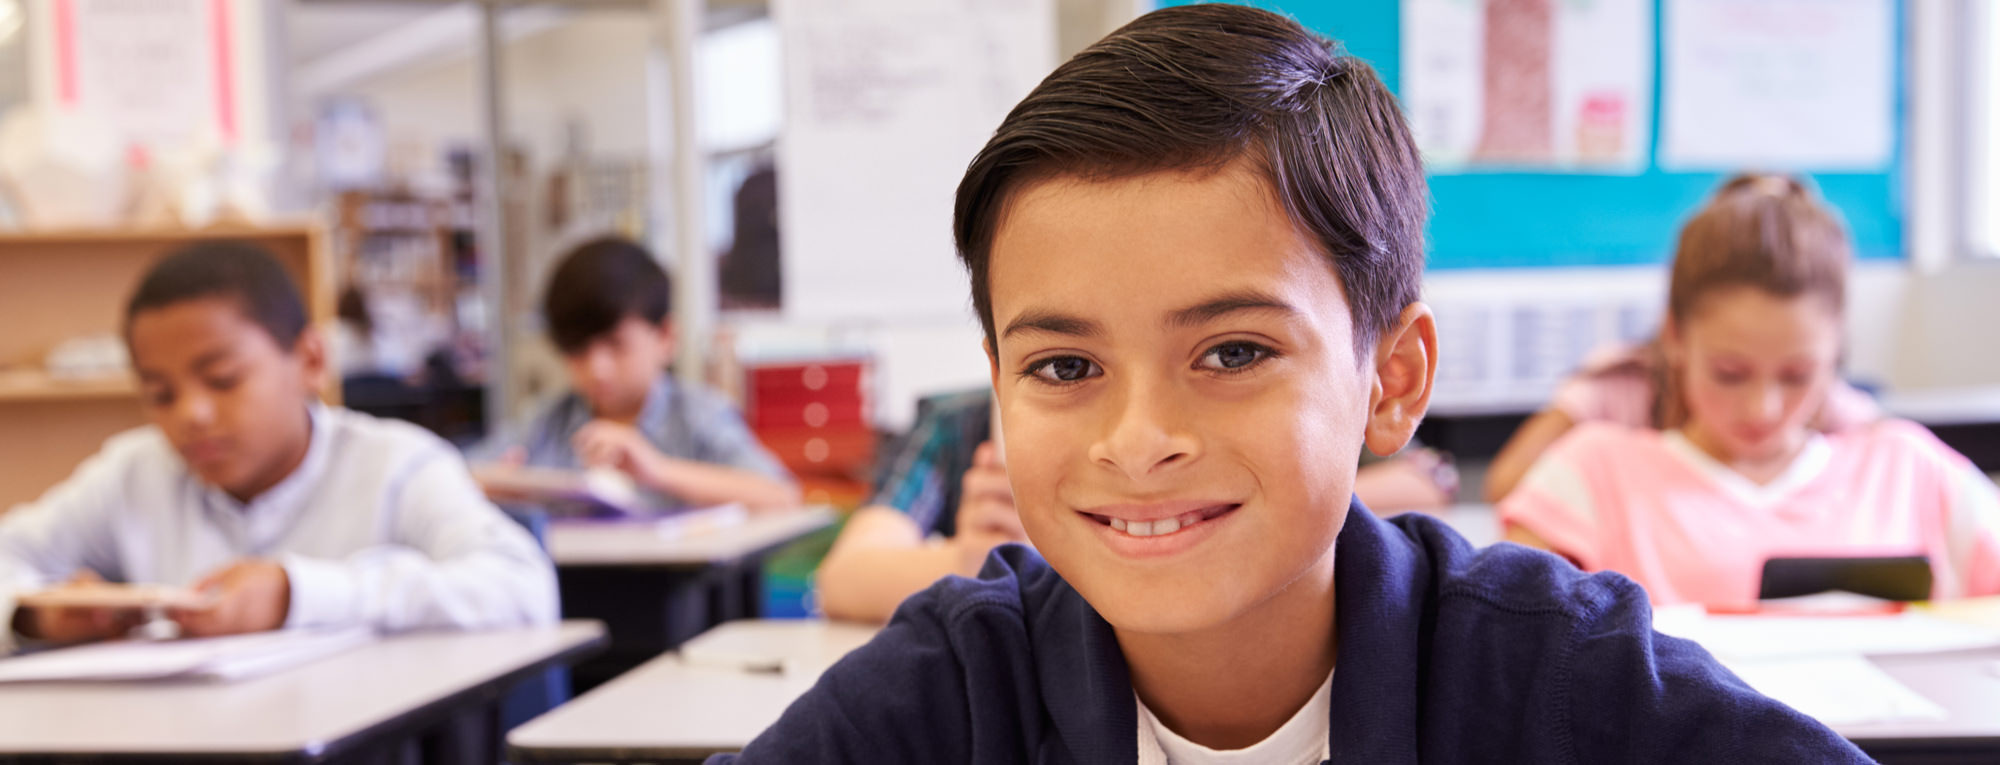 smiling student in a classroom